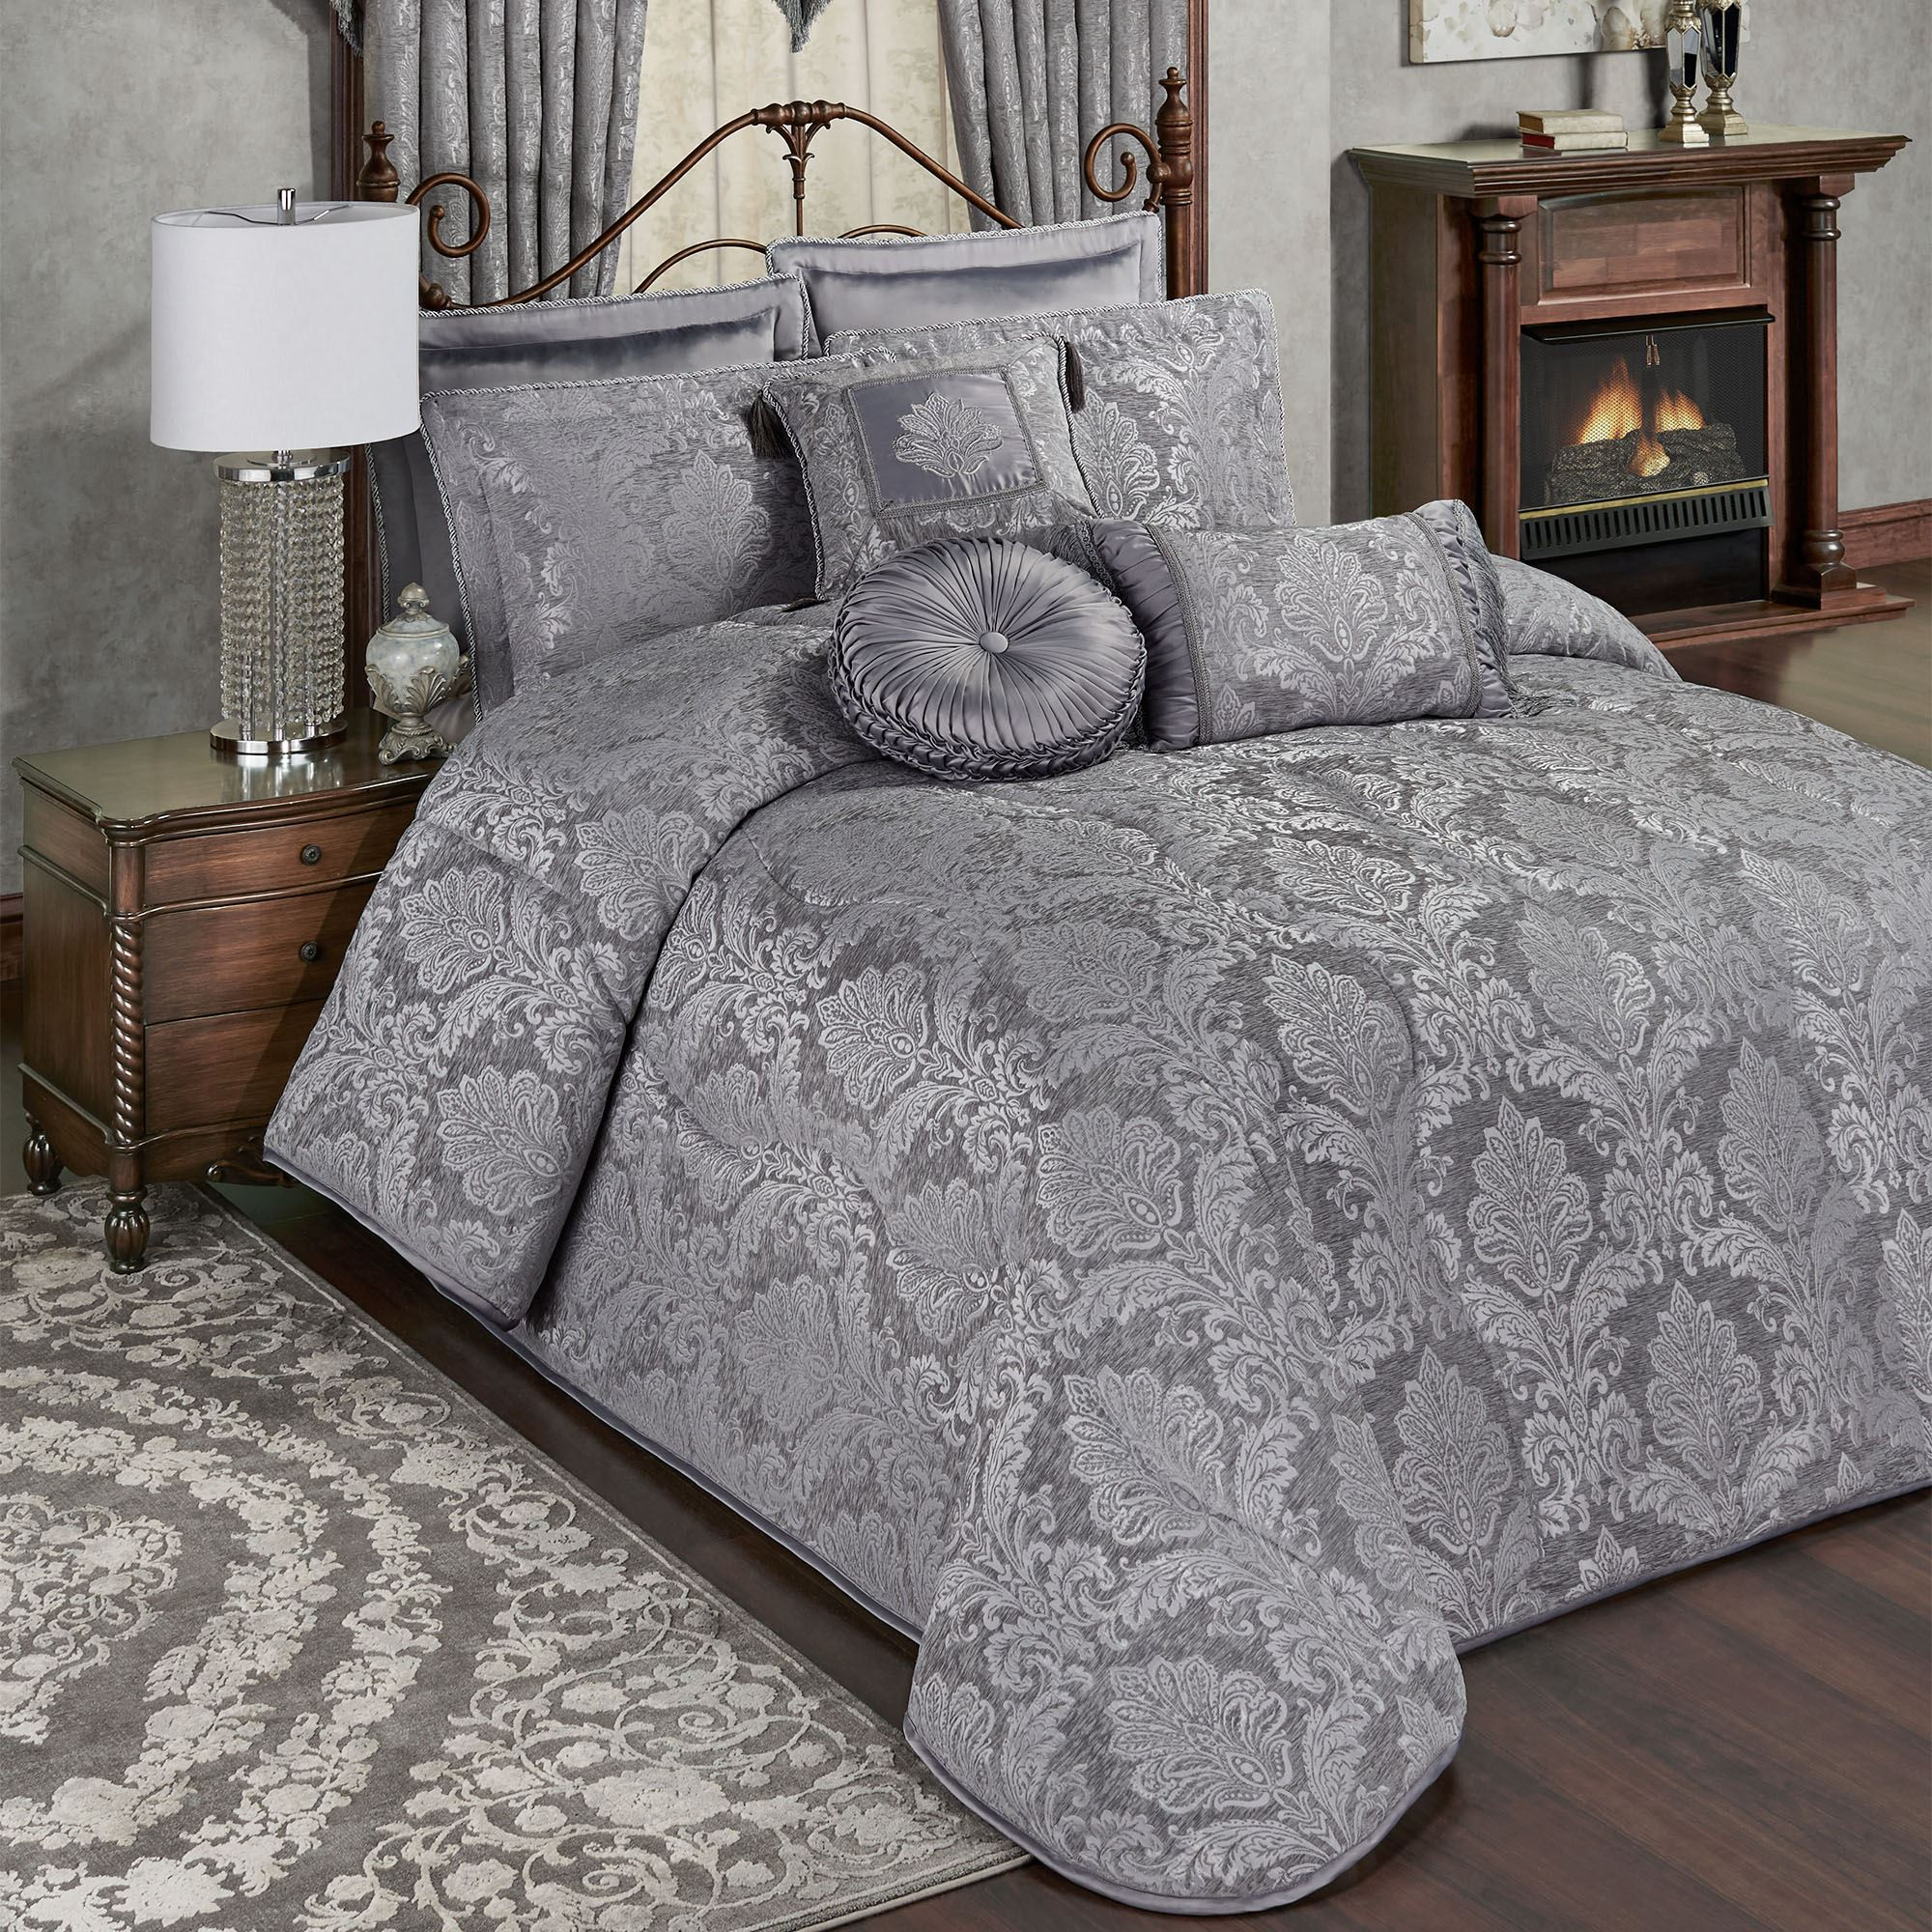 Camelot Warm Gray Damask Quilted Oversized Bedspread Bedding